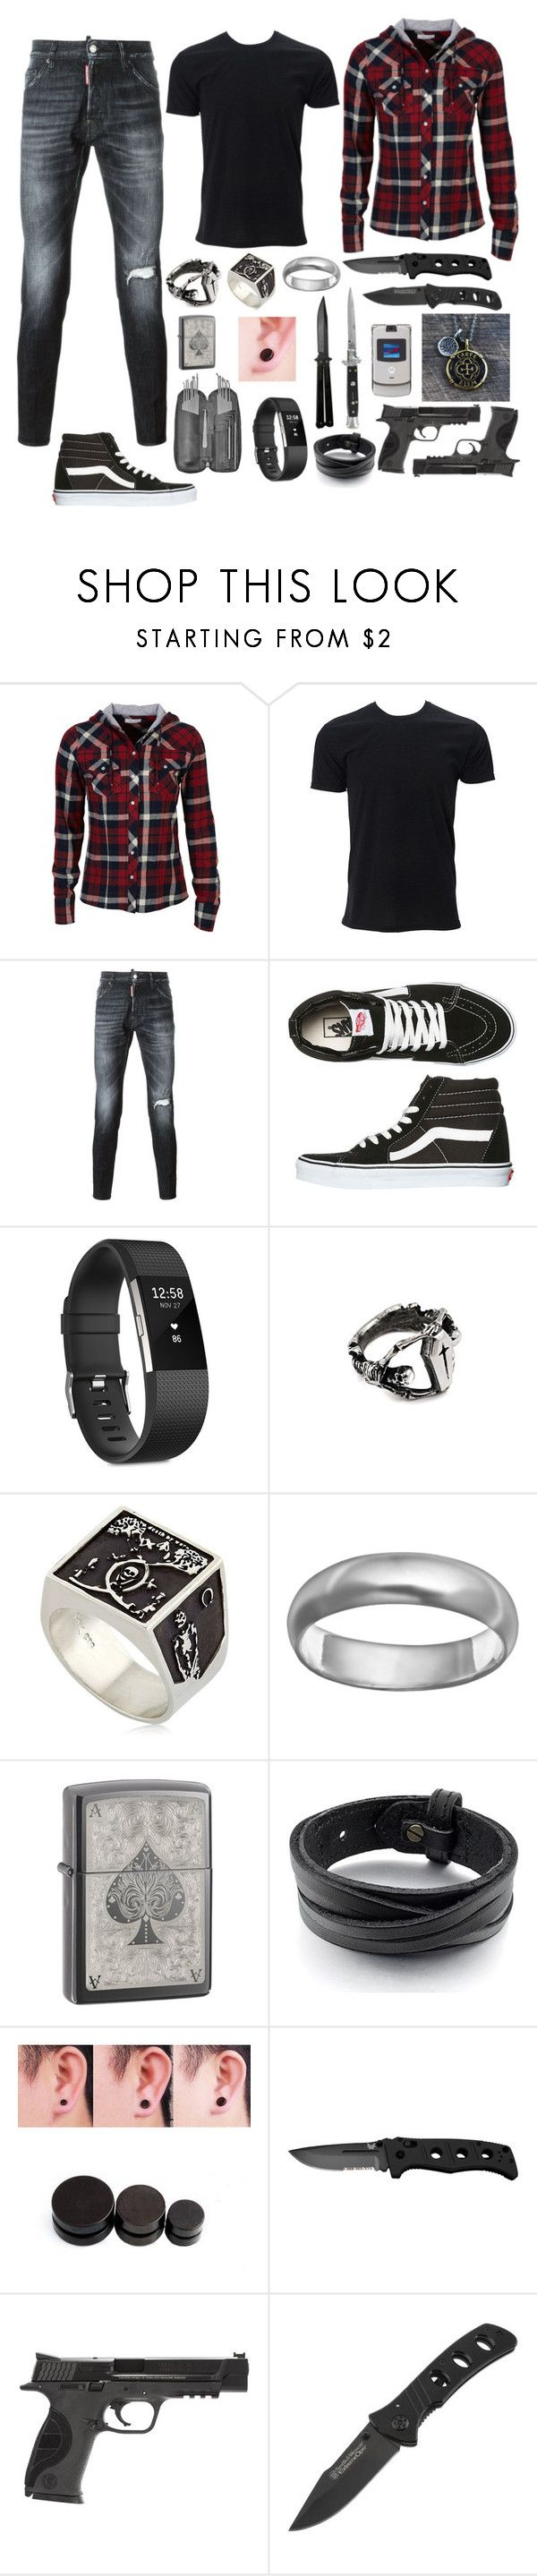 """Untitled #648"" by sammywinchester05 ❤ liked on Polyvore featuring dELiA*s, Simplex Apparel, Dsquared2, Vans, Fitbit, Meadowlark, Sterling, Switchblade Stiletto, Smith & Wesson and Motorola"